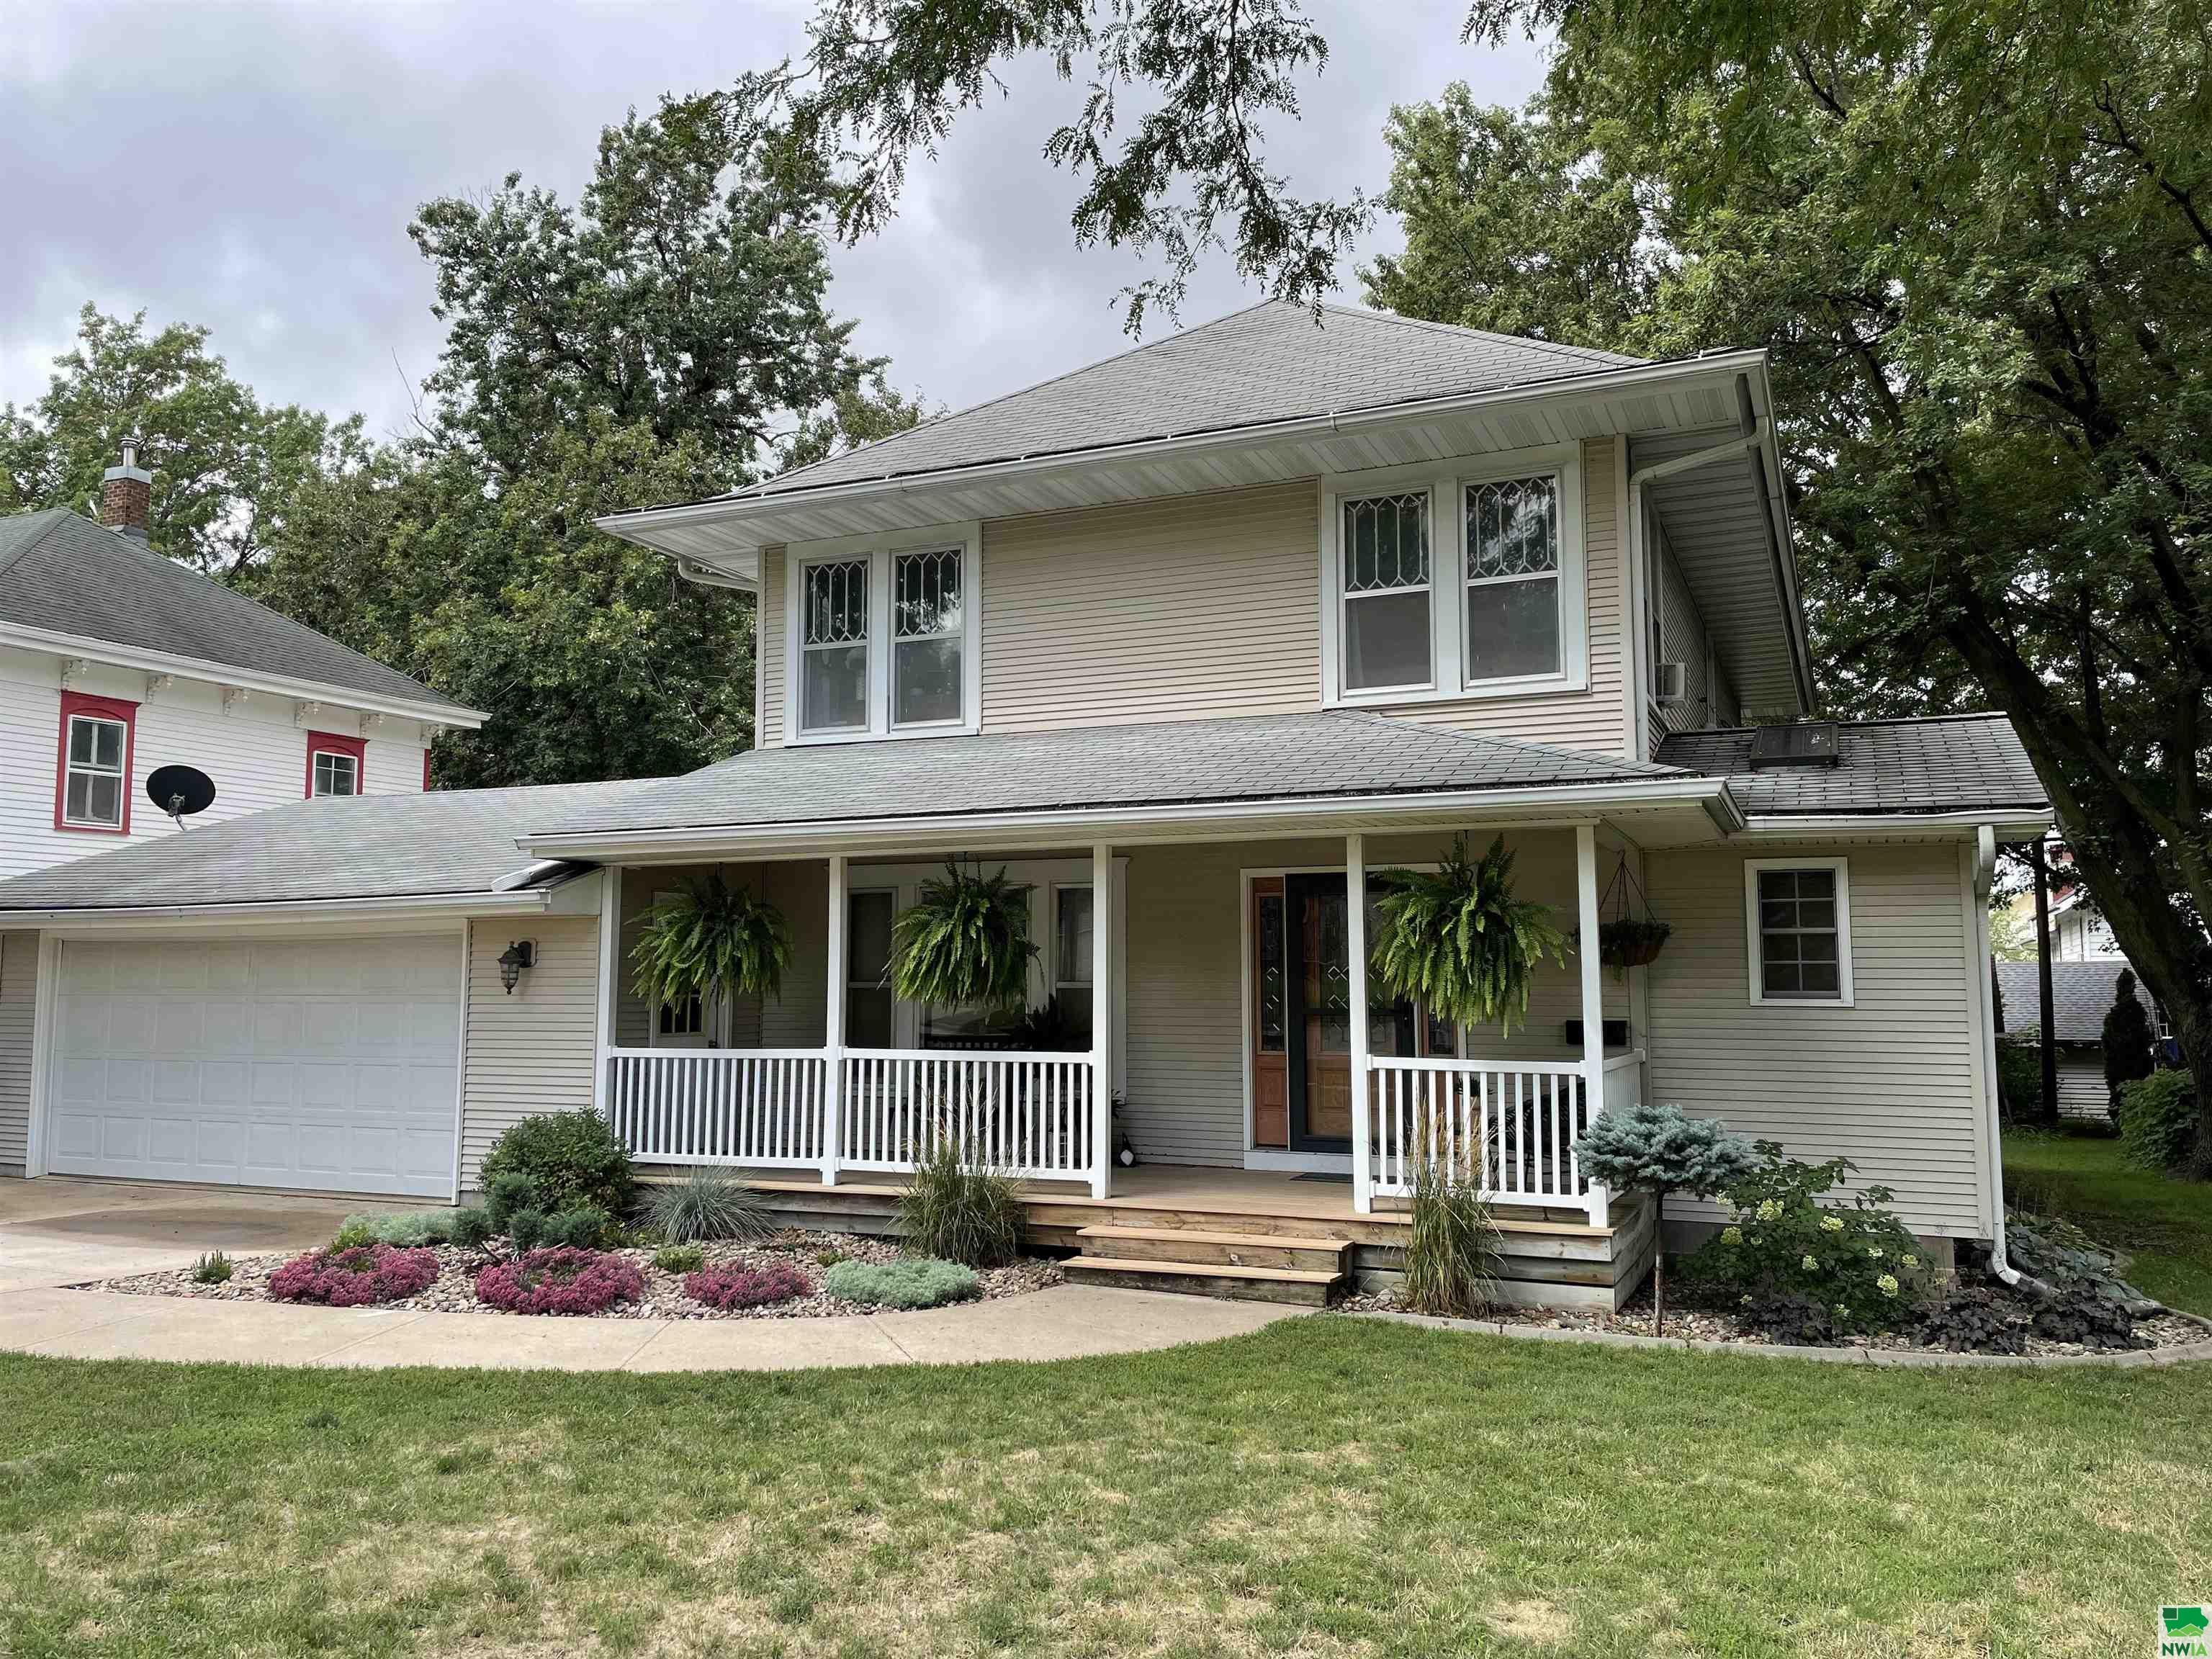 909 CENTRAL AVE SW, LeMars, Iowa 51031